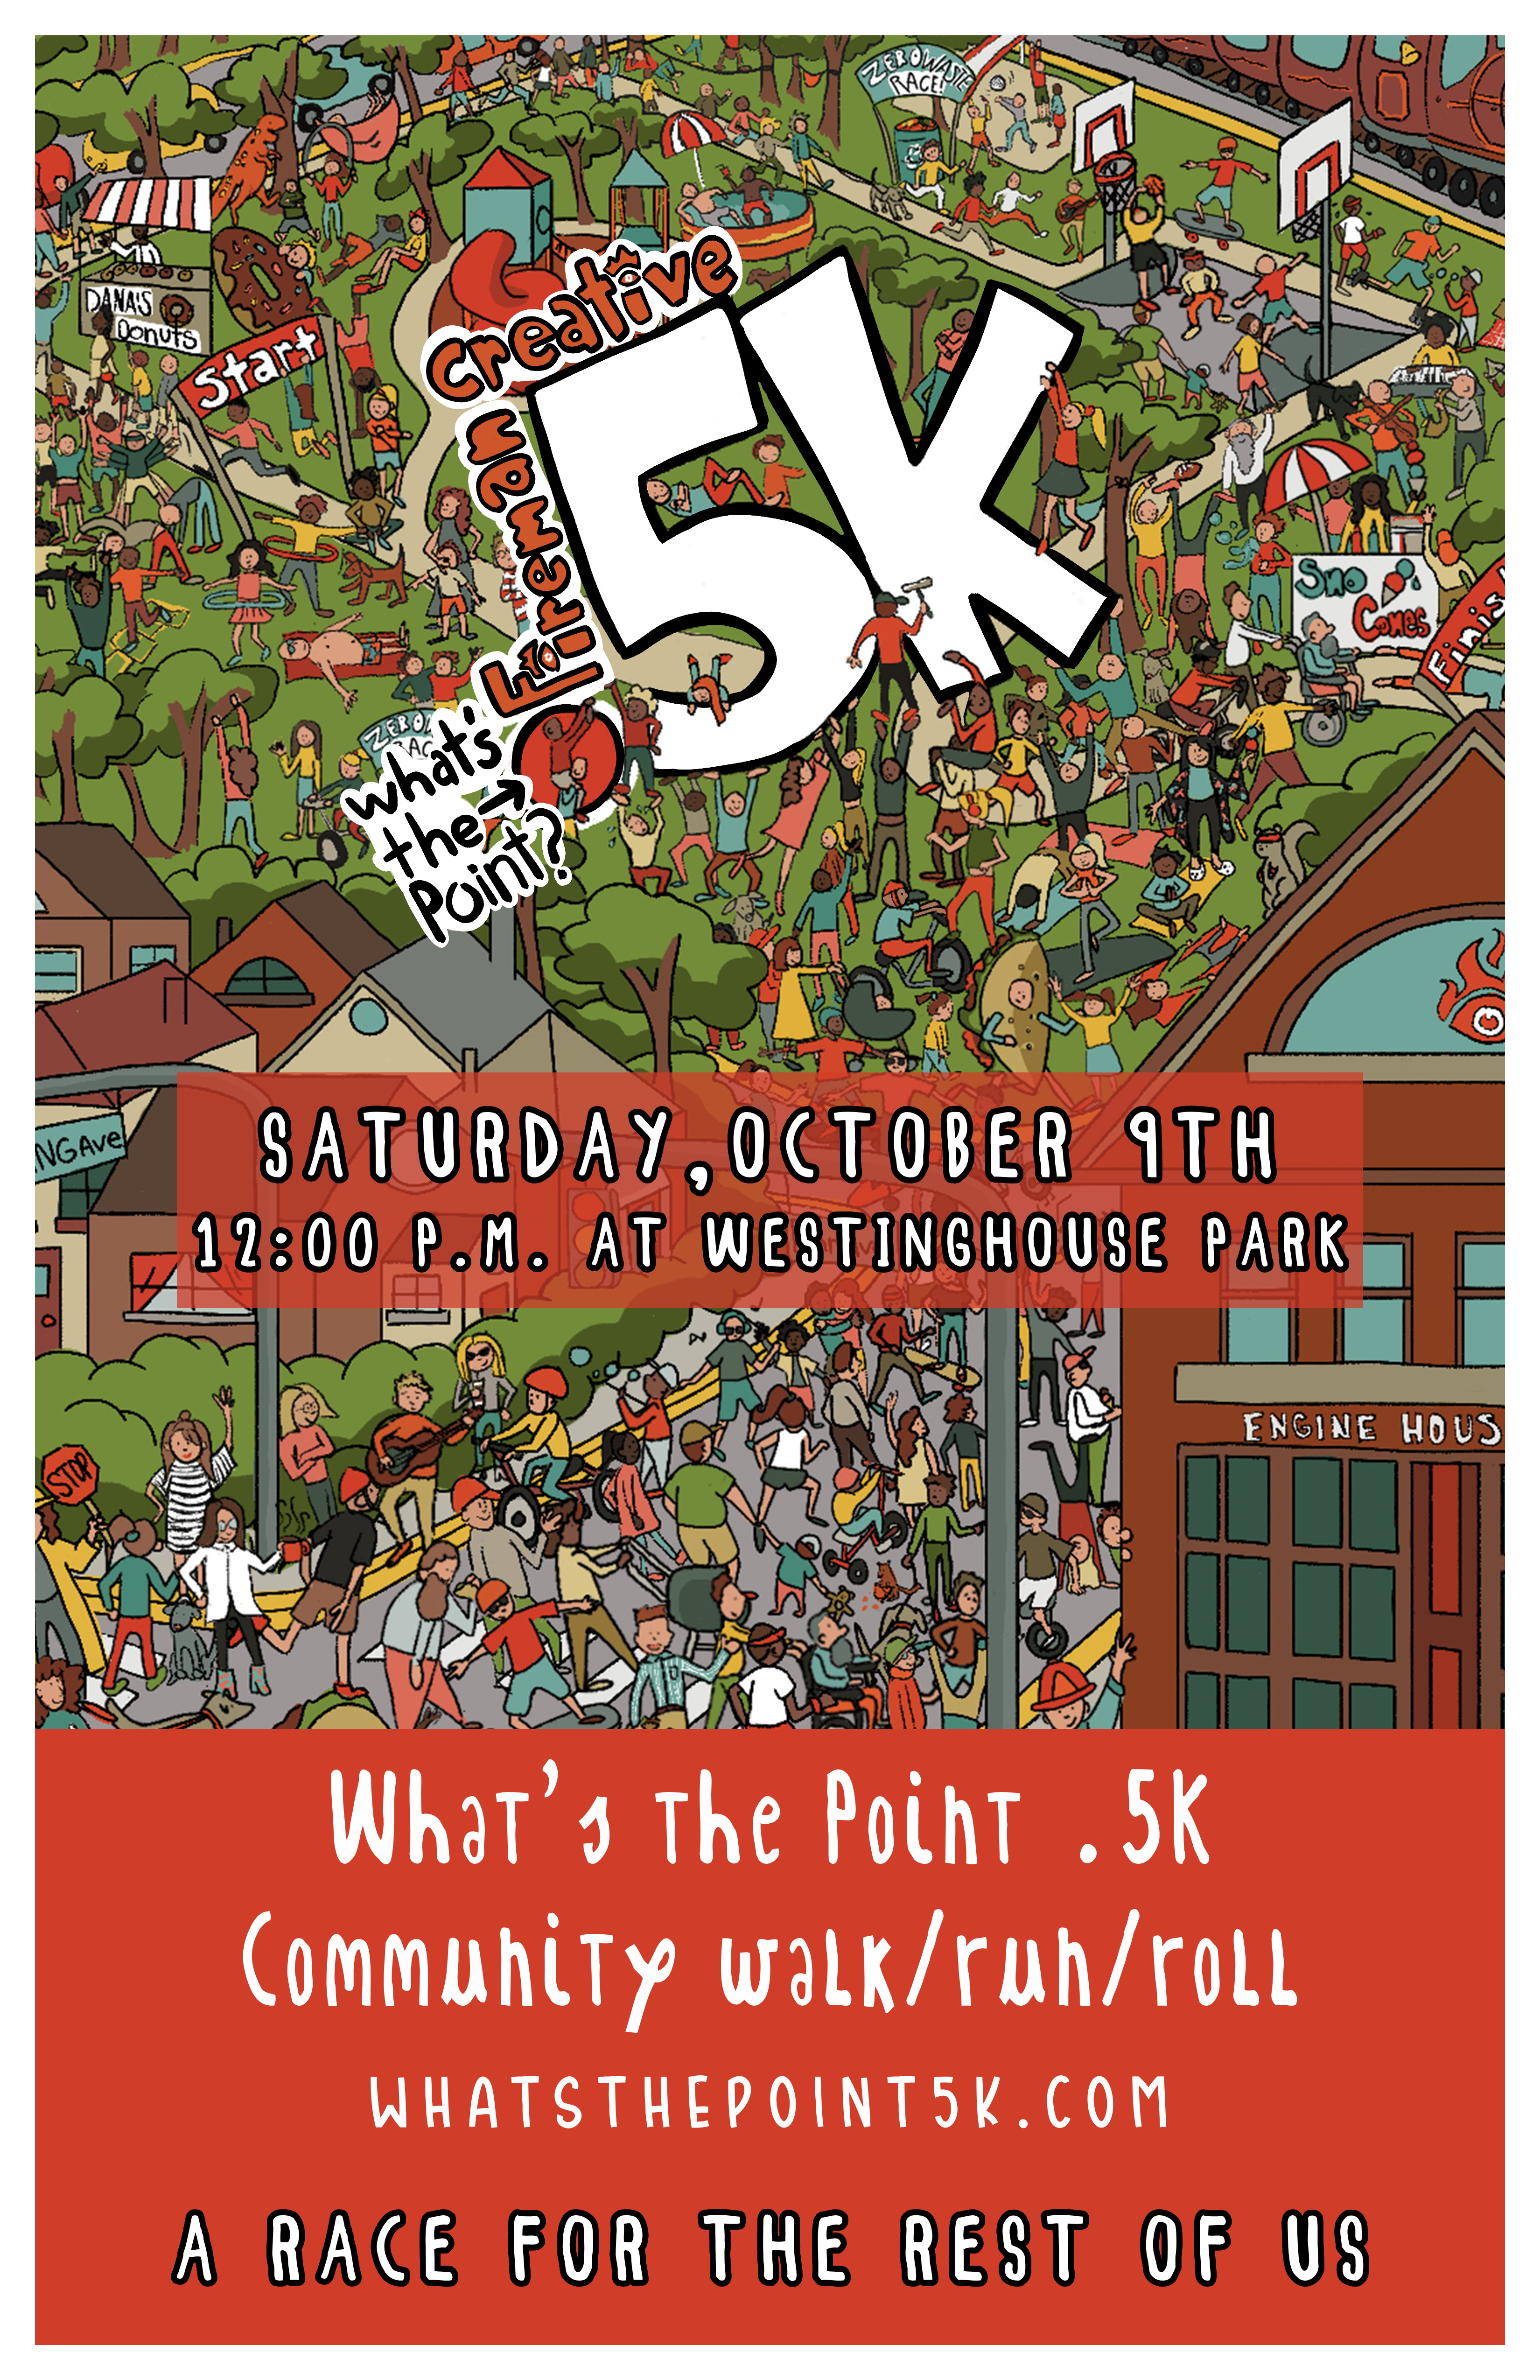 What's the Point .5K Poster. Date: Saturday, October 9th, 12 o'clock P.M.. Location: Westinghouse Park. Additional Information: Community walk/run/roll; A race for the rest of us. Website: whatsthepoint5k.com